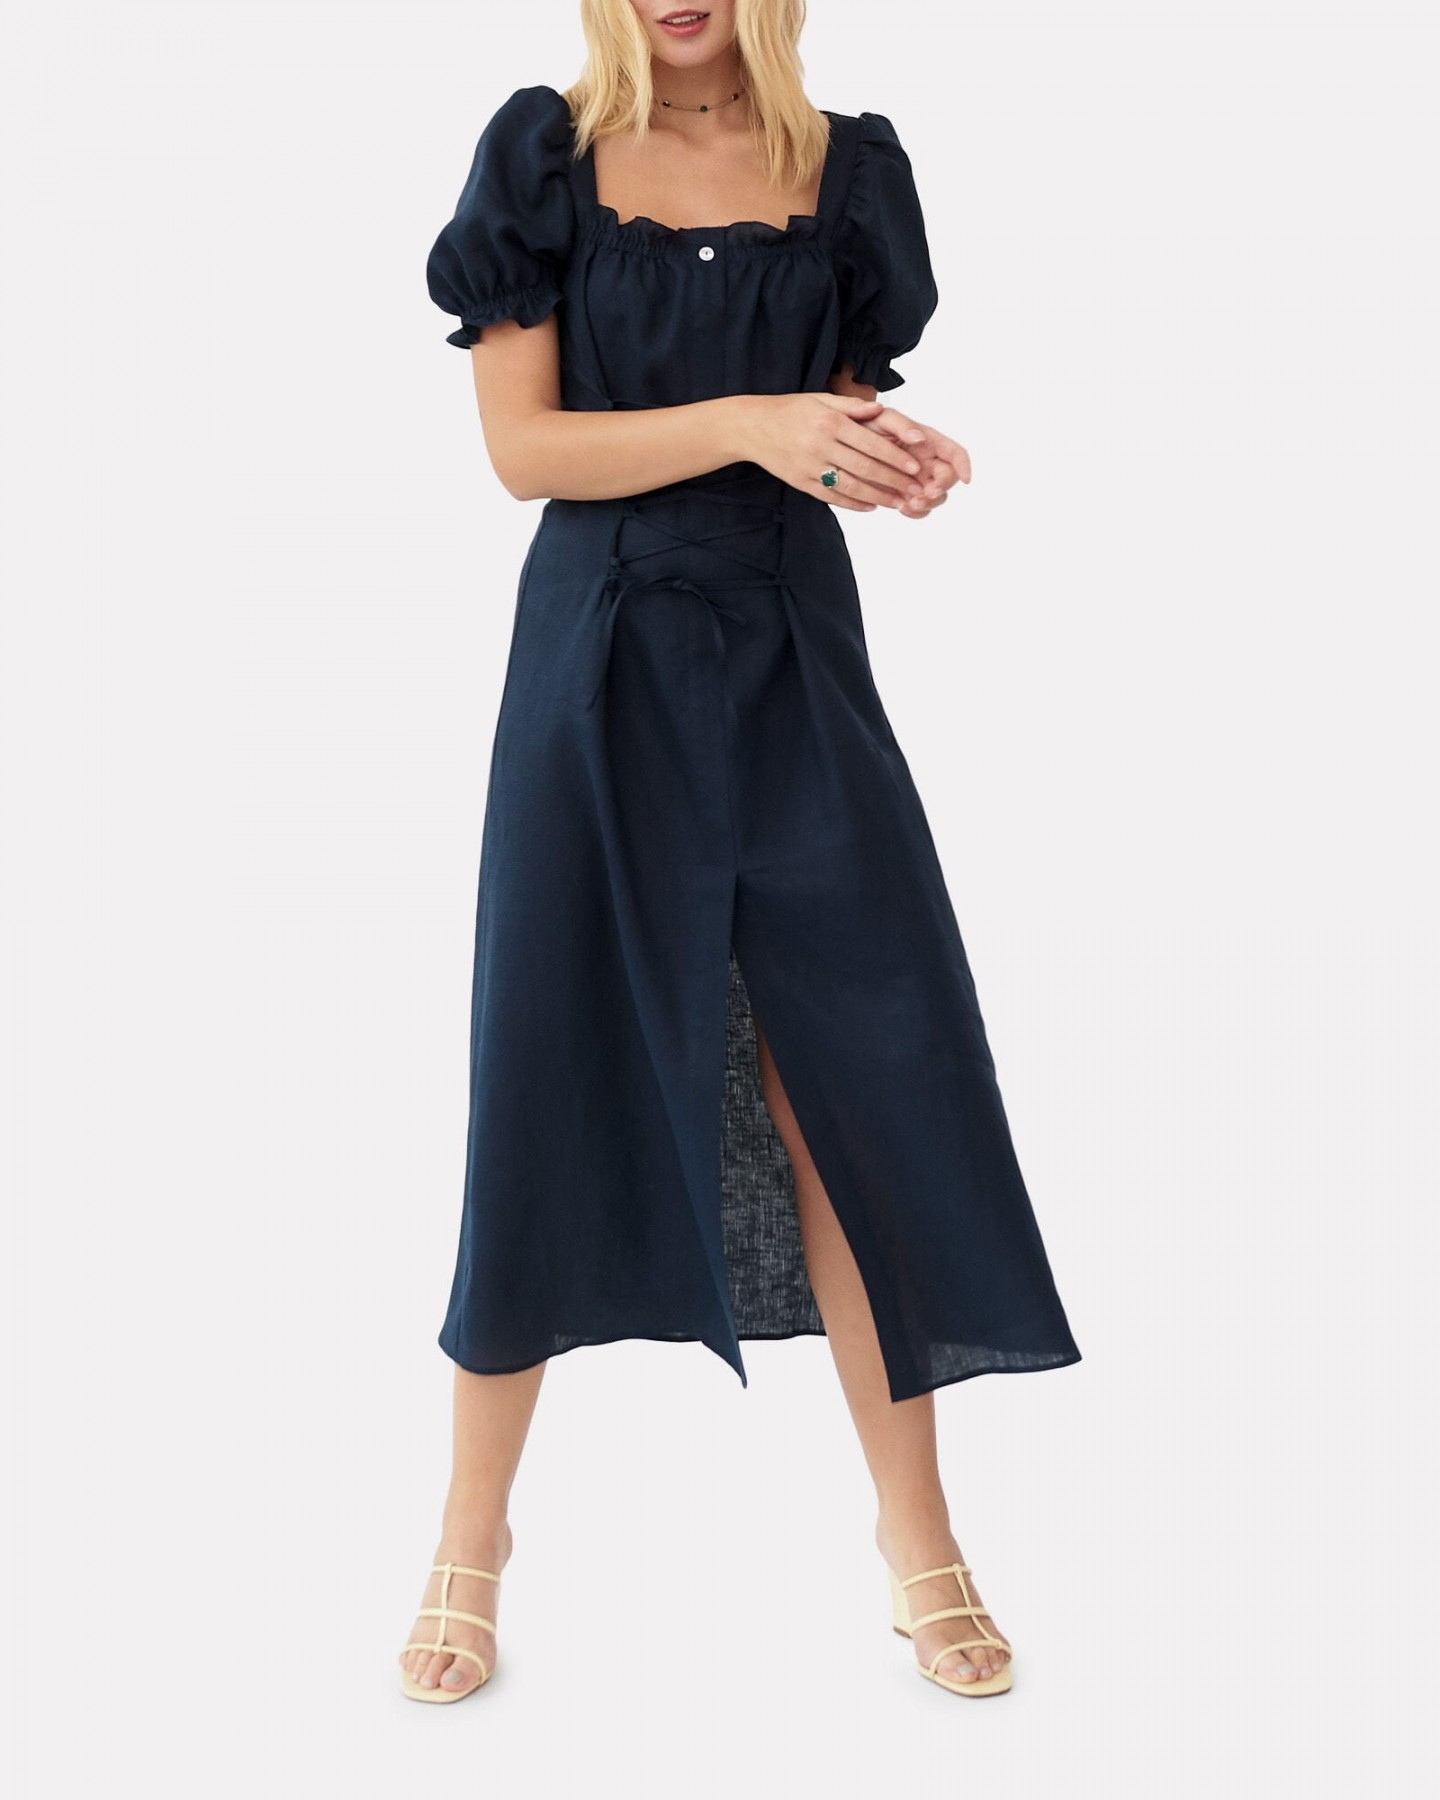 SLEEPER Marquise Lace-Up Linen Dress